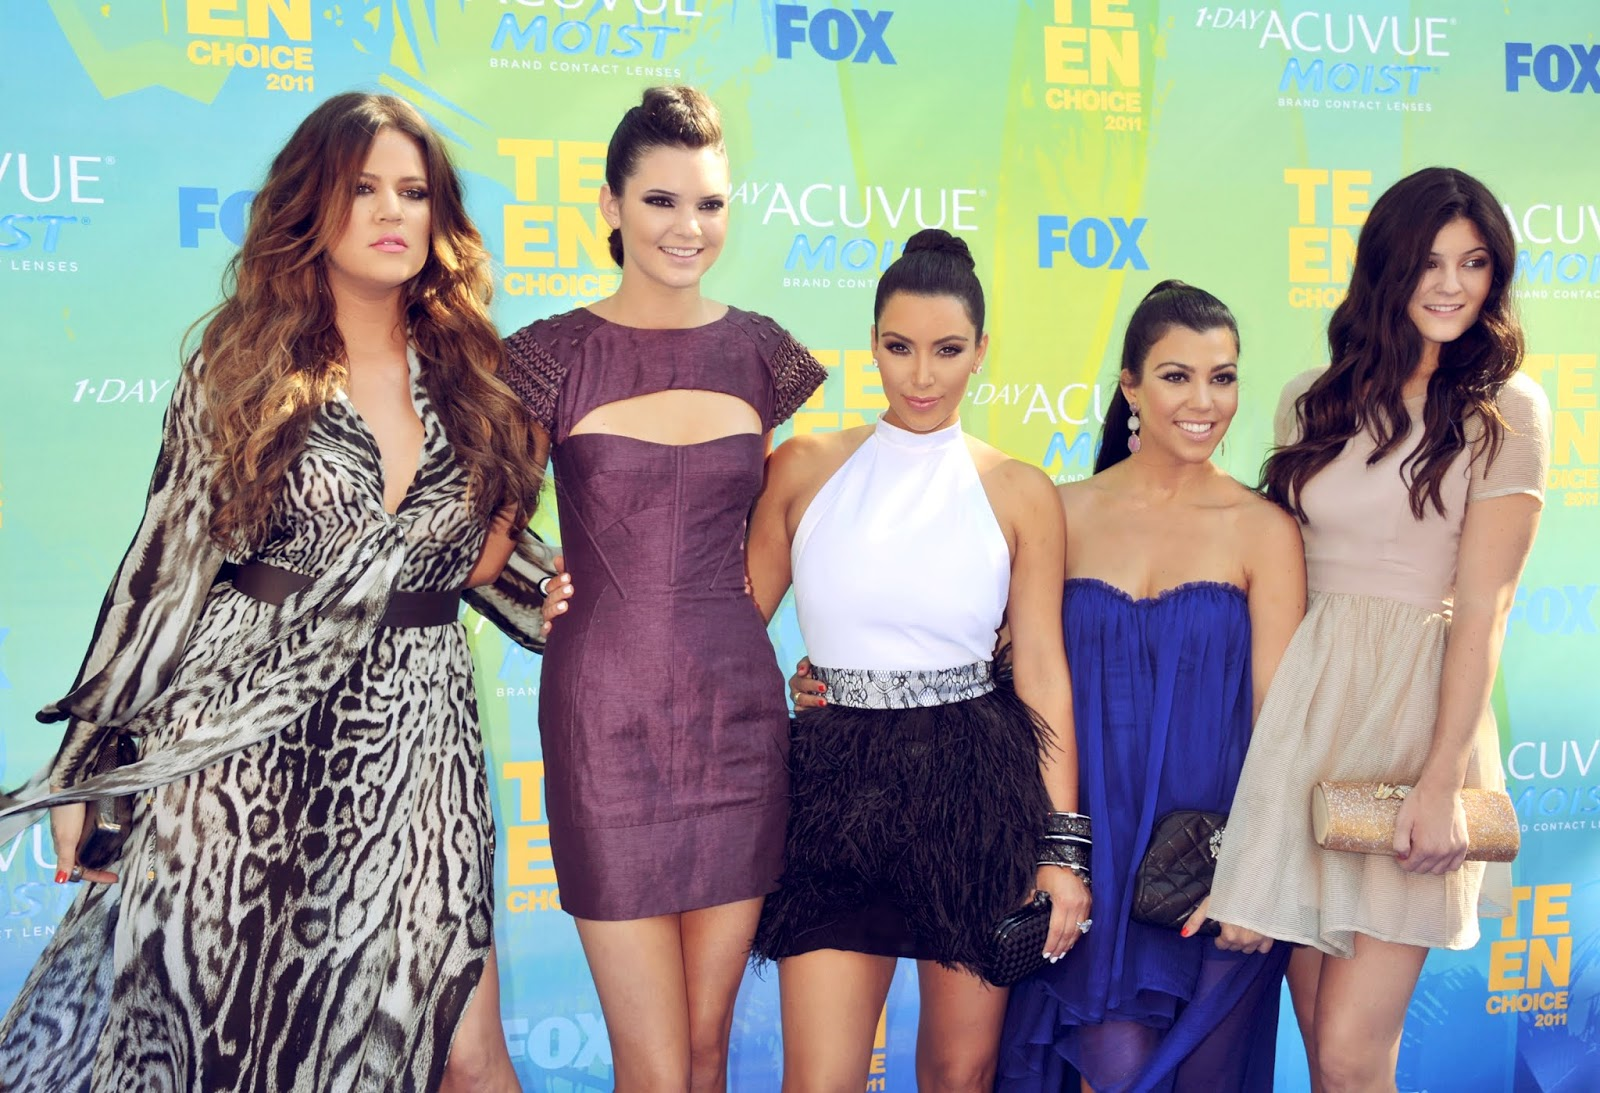 48 - Teen Choice Awards in August 11, 2011